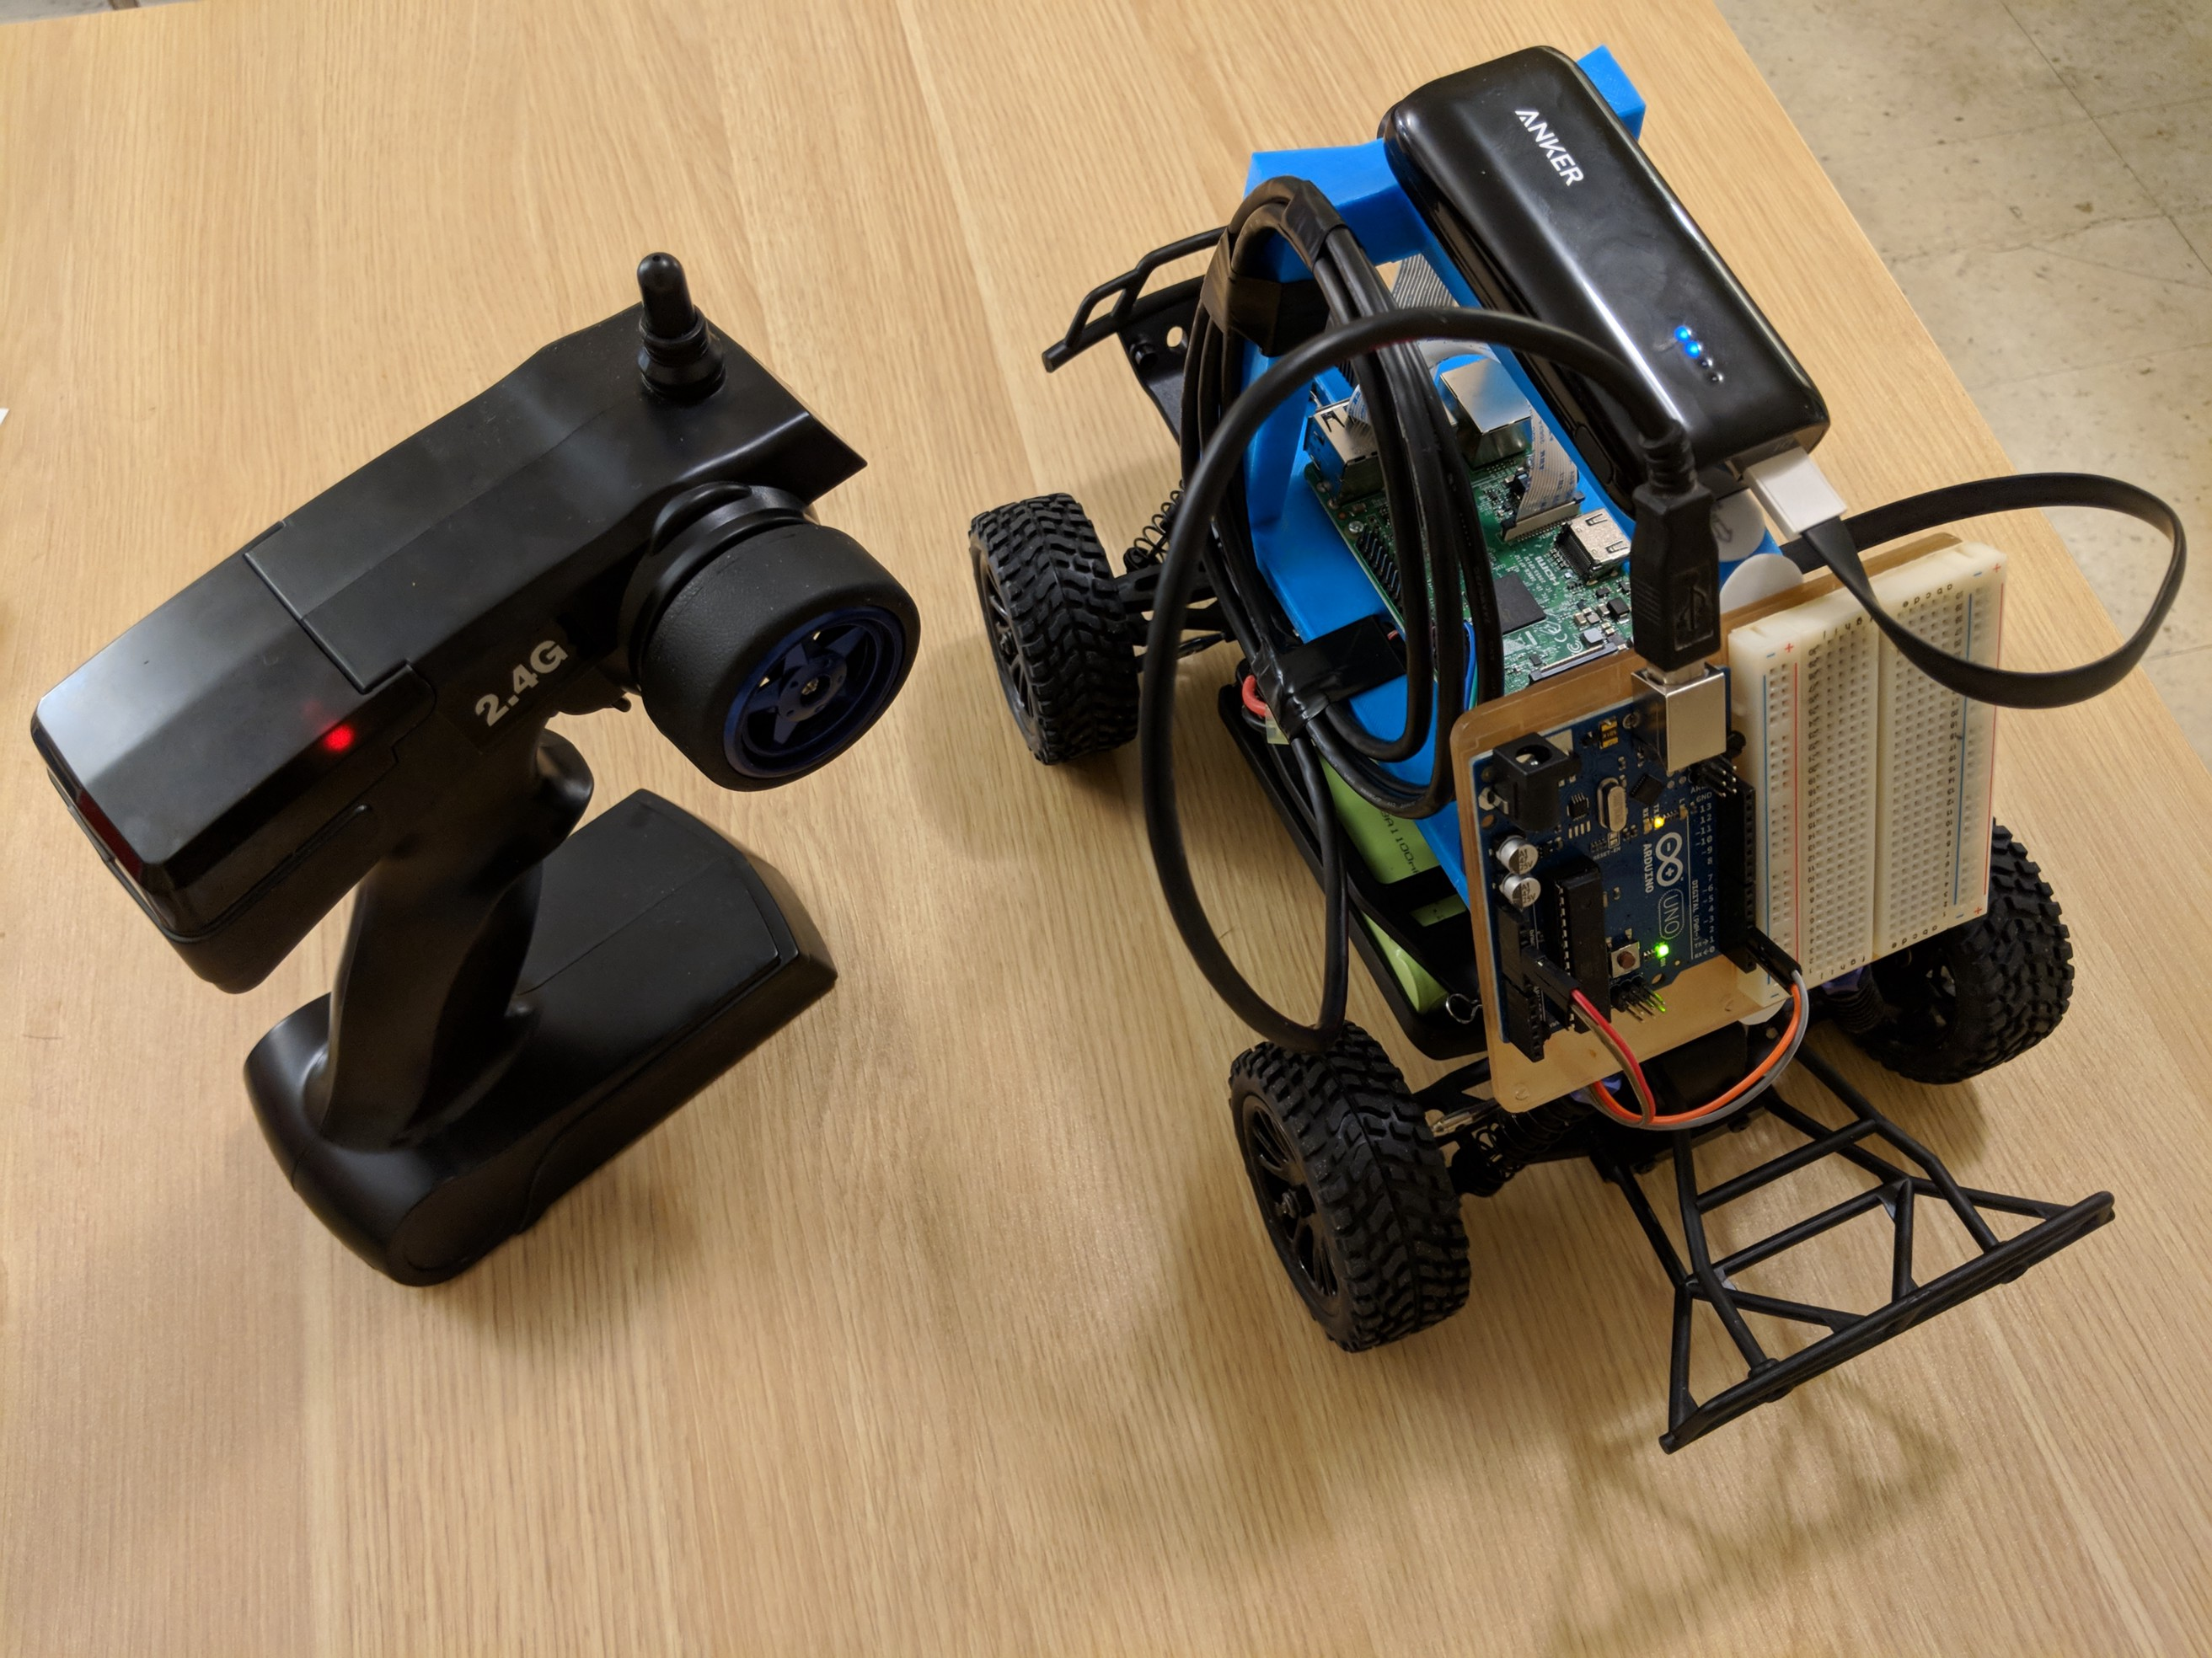 Build a Self-driving Car in Two Days and Learn about Deep Learning